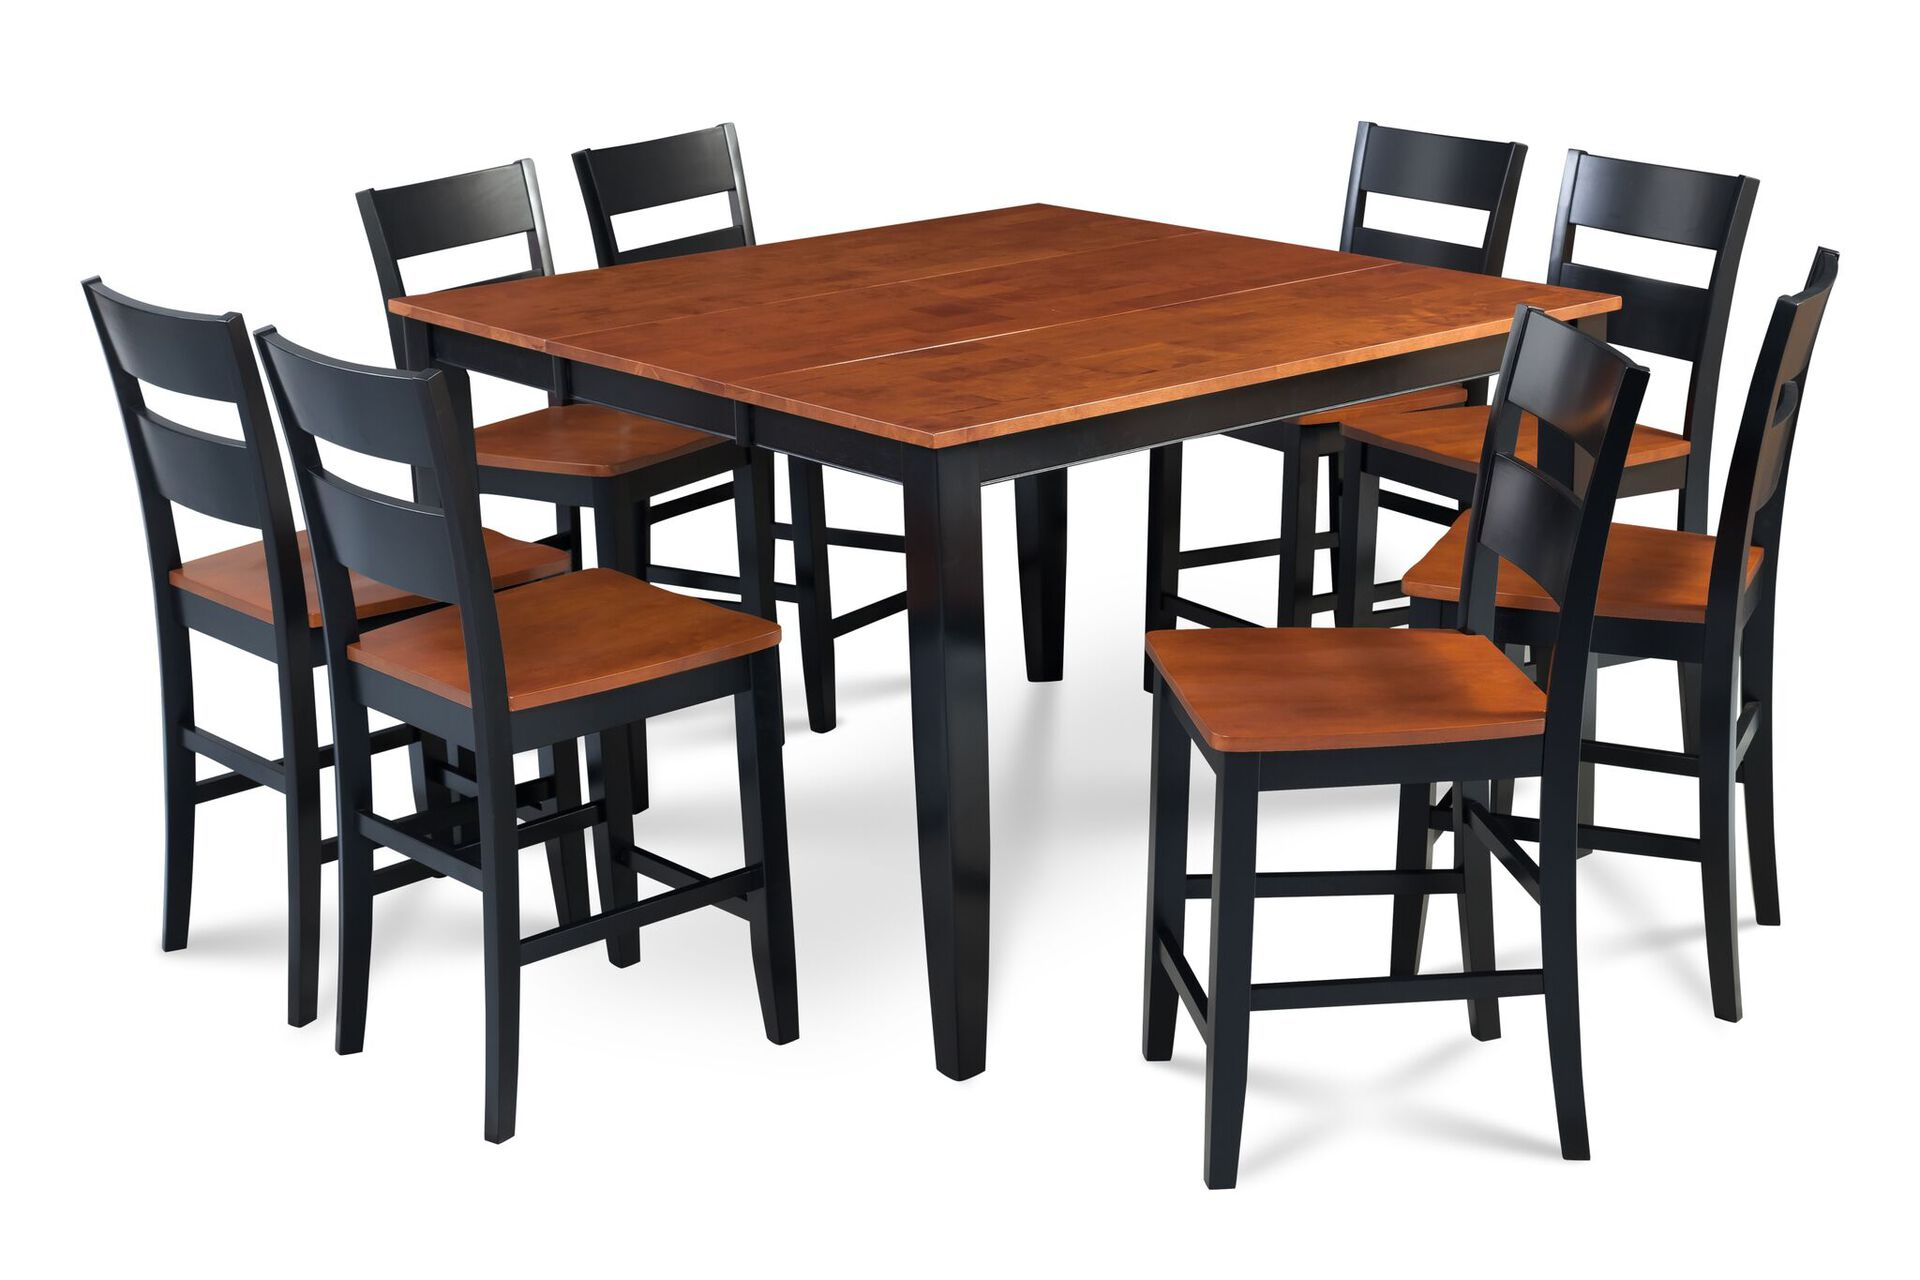 Fullerton Counter Height Cherry Seat Chair In Black (2 Piece Set)